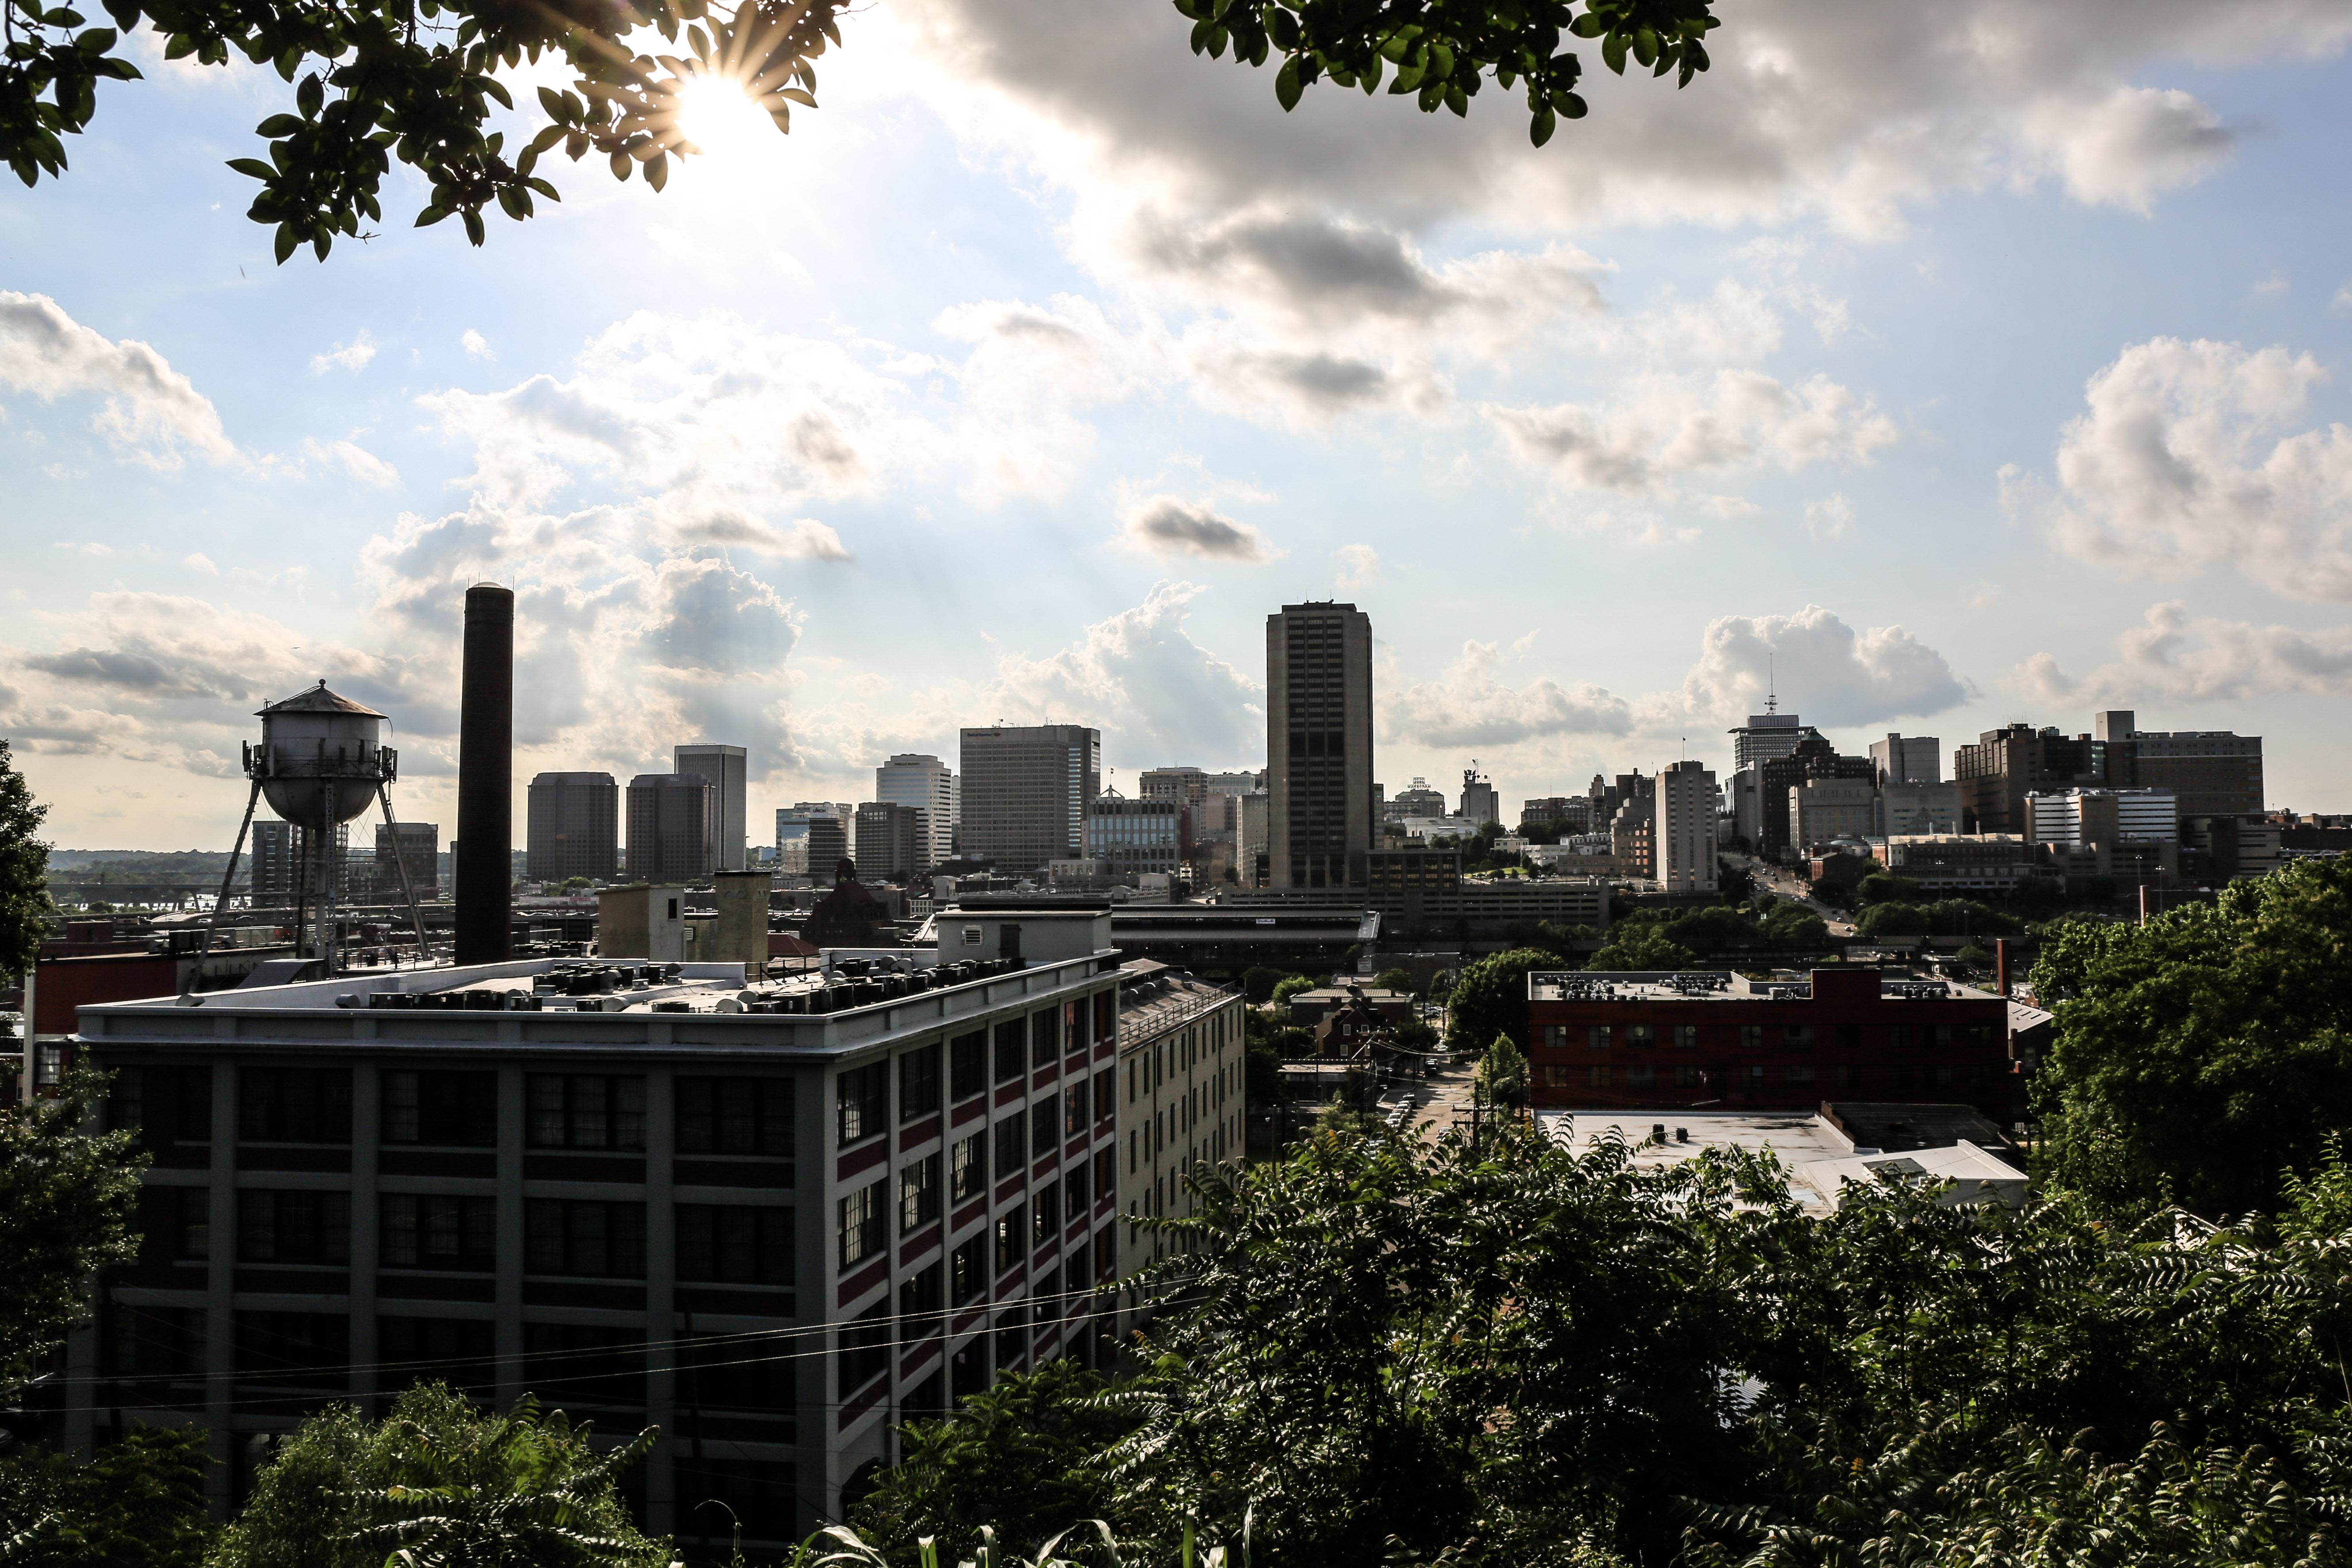 A view of the Richmond skyline